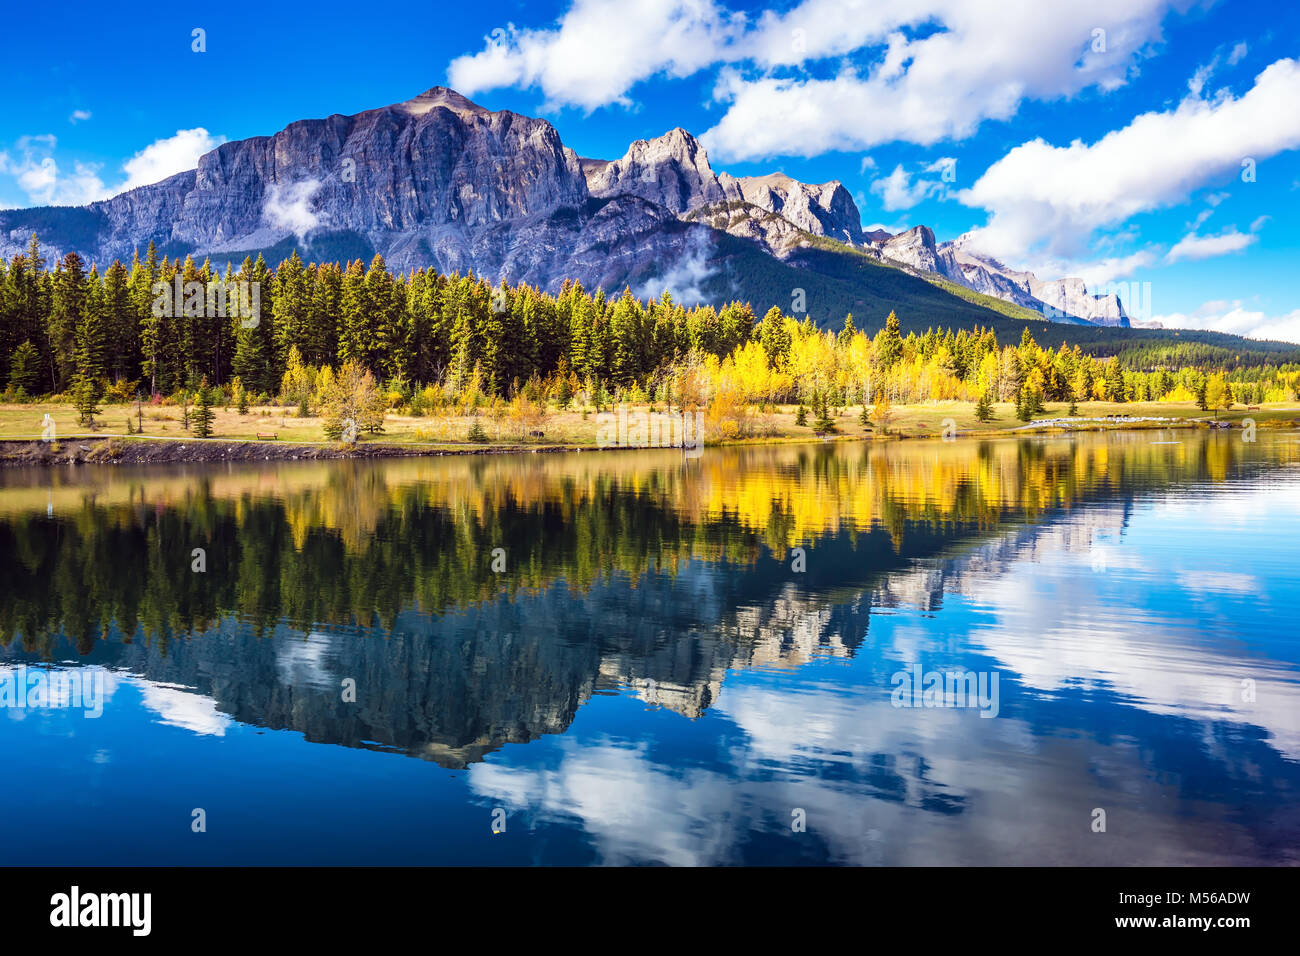 Canmore, near Banff - Stock Image